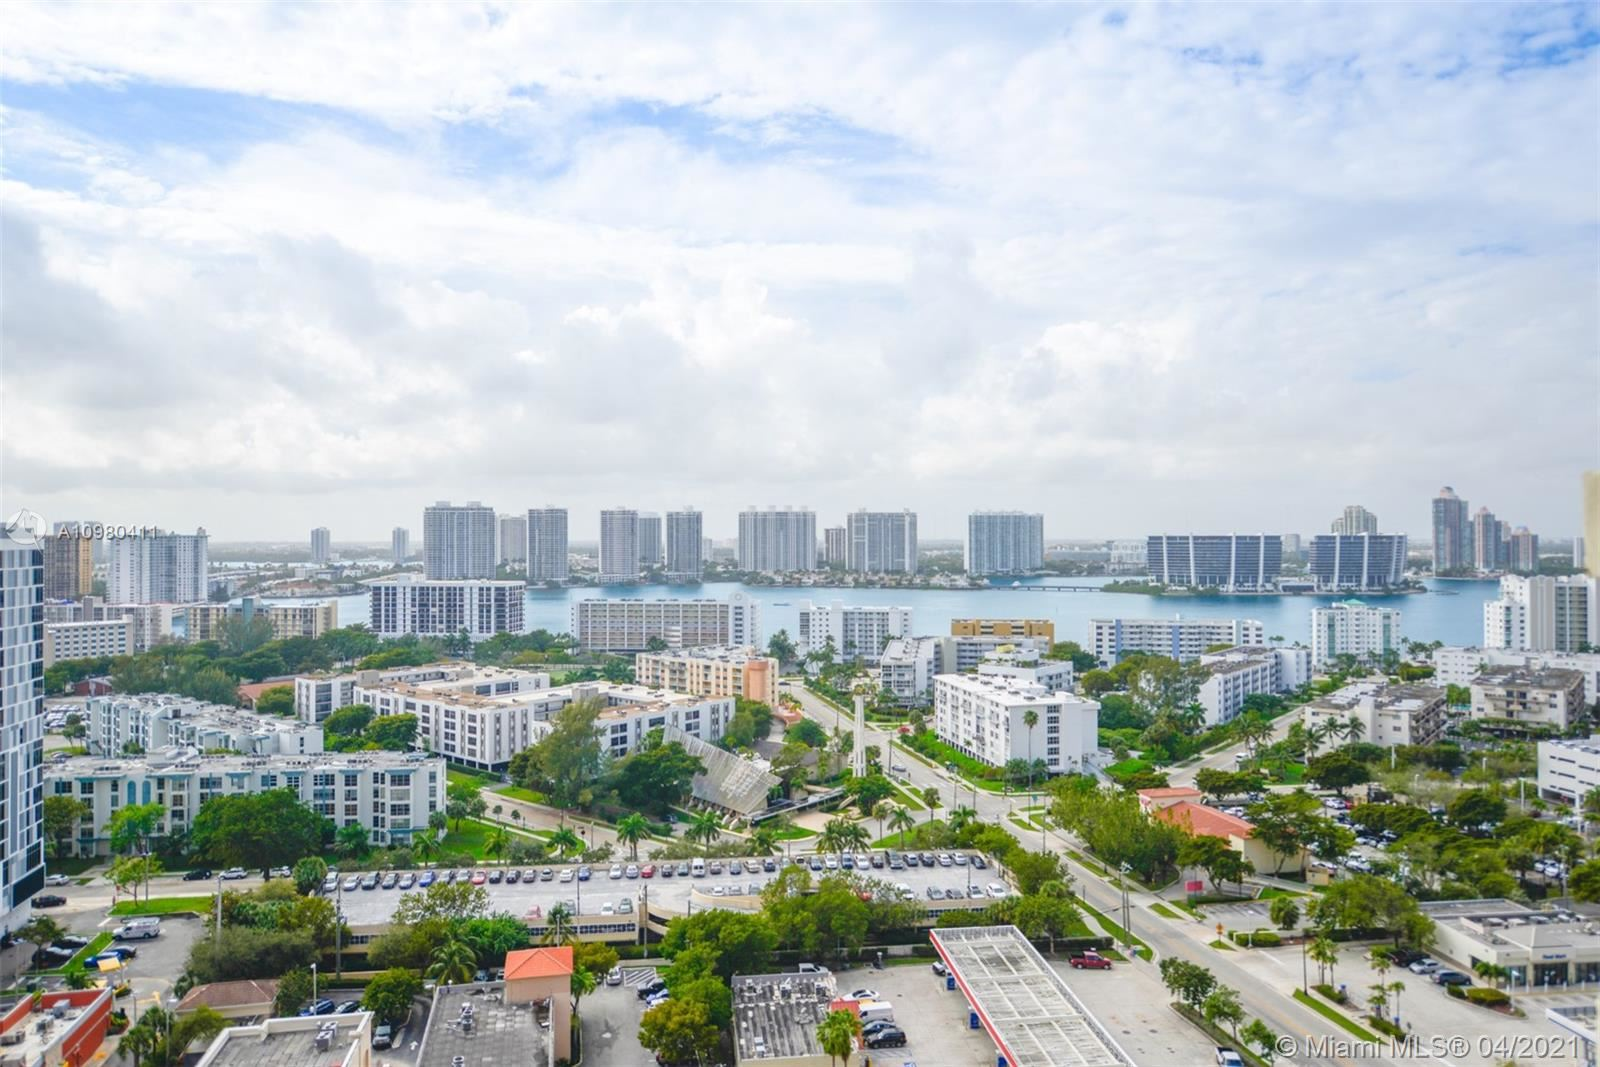 17875 Collins Ave #2110, Sunny Isles, FL 33160 - #: A10980411